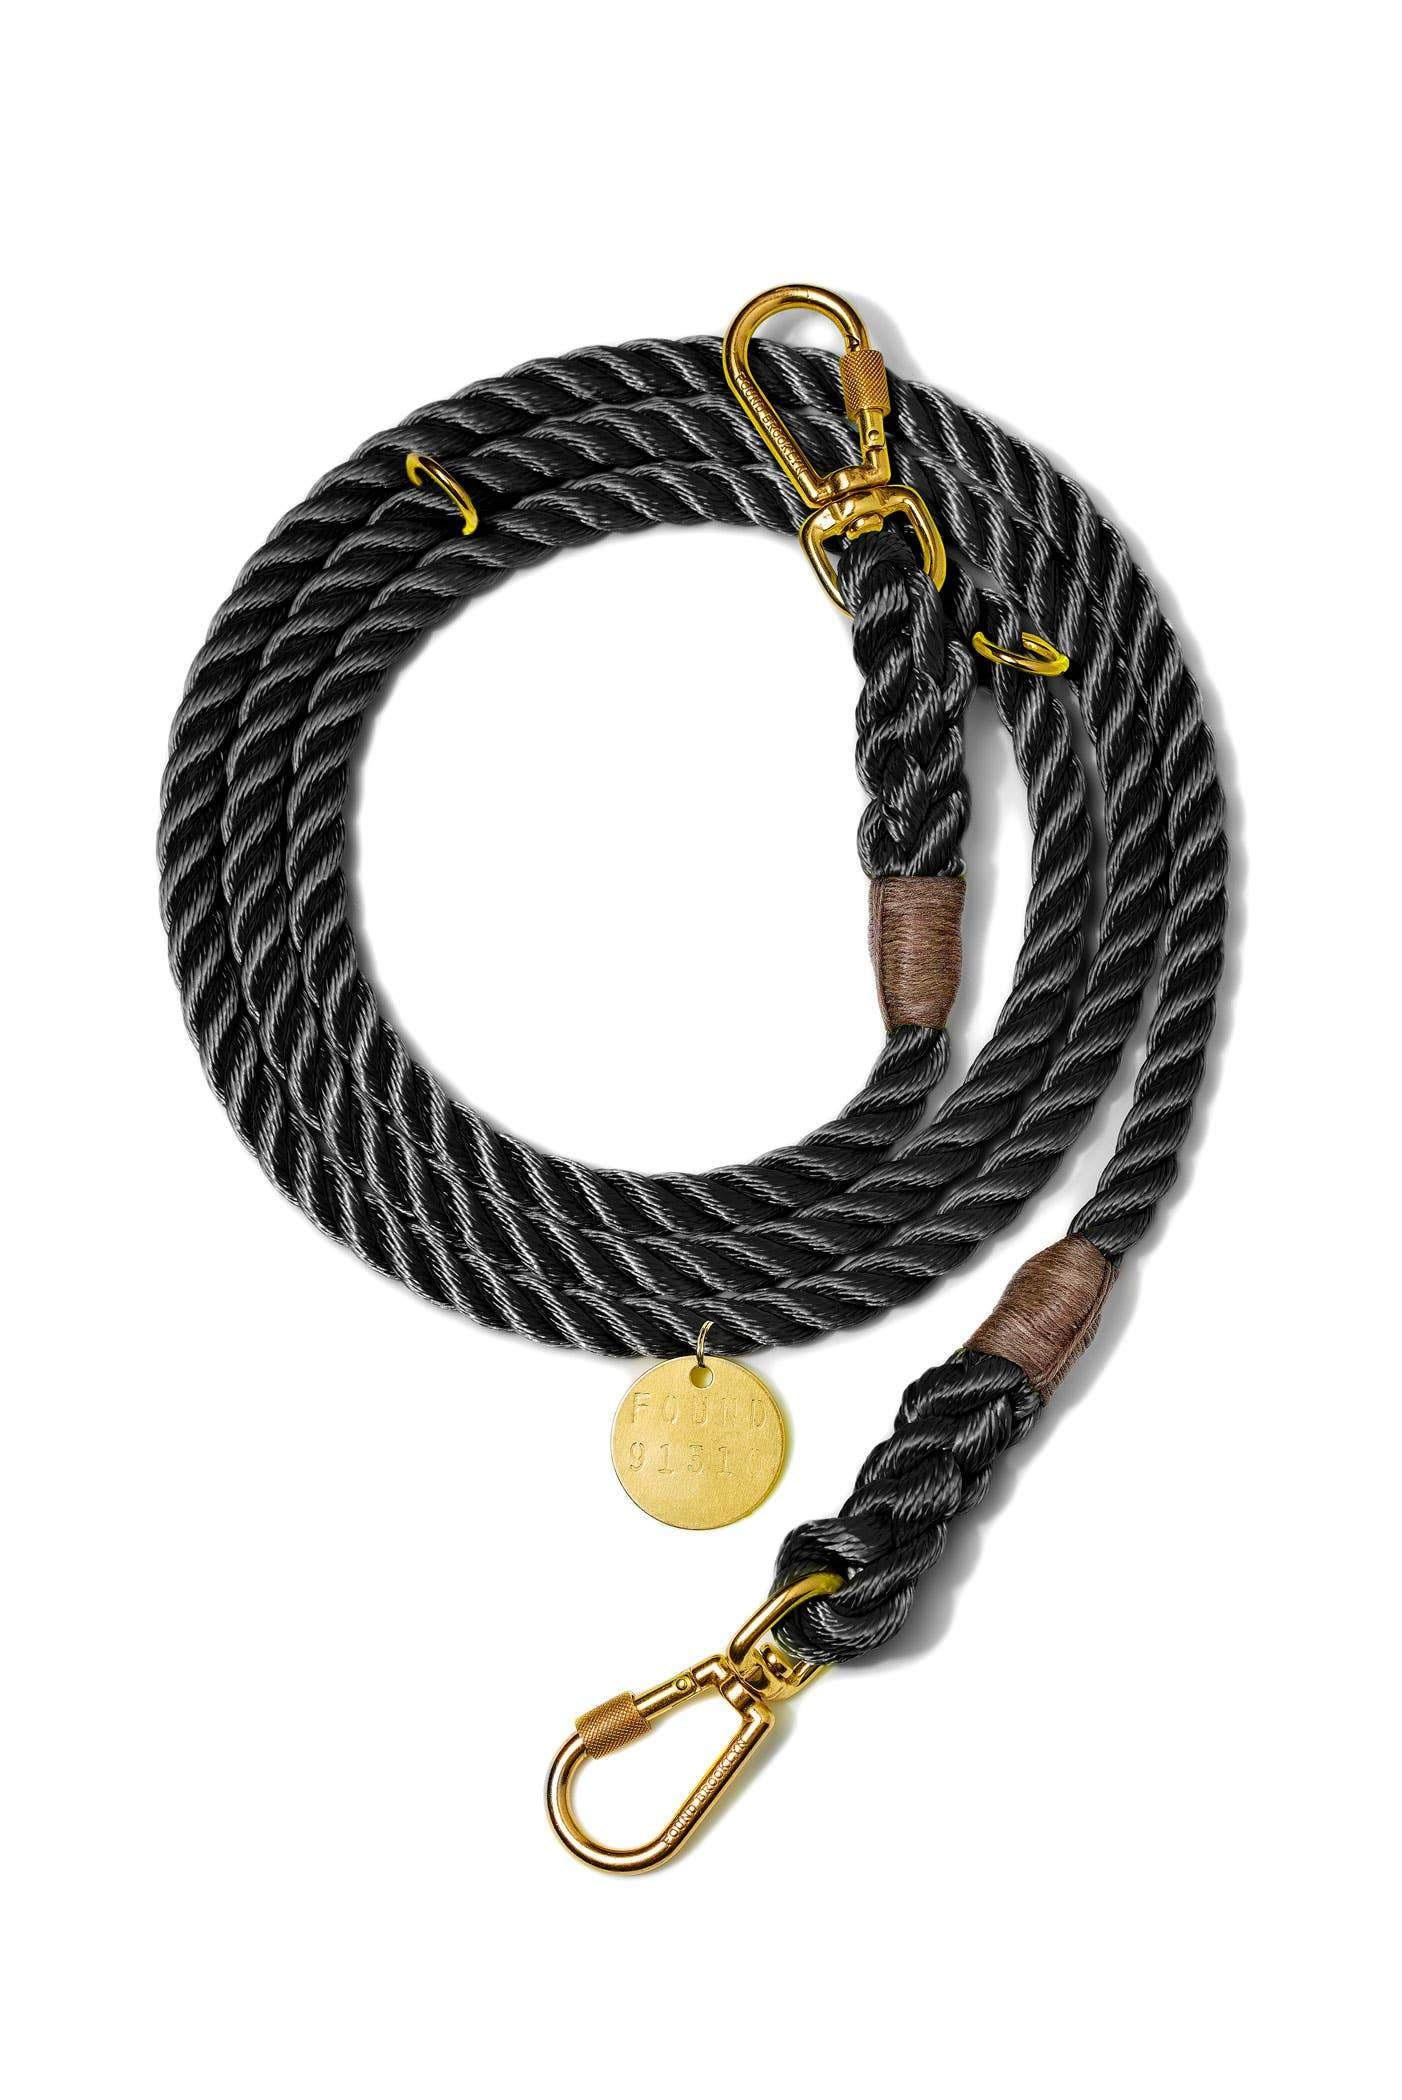 Found My Animal, Found My Animal - Adjustable Black Rope Dog Leash, Medium- Placewares